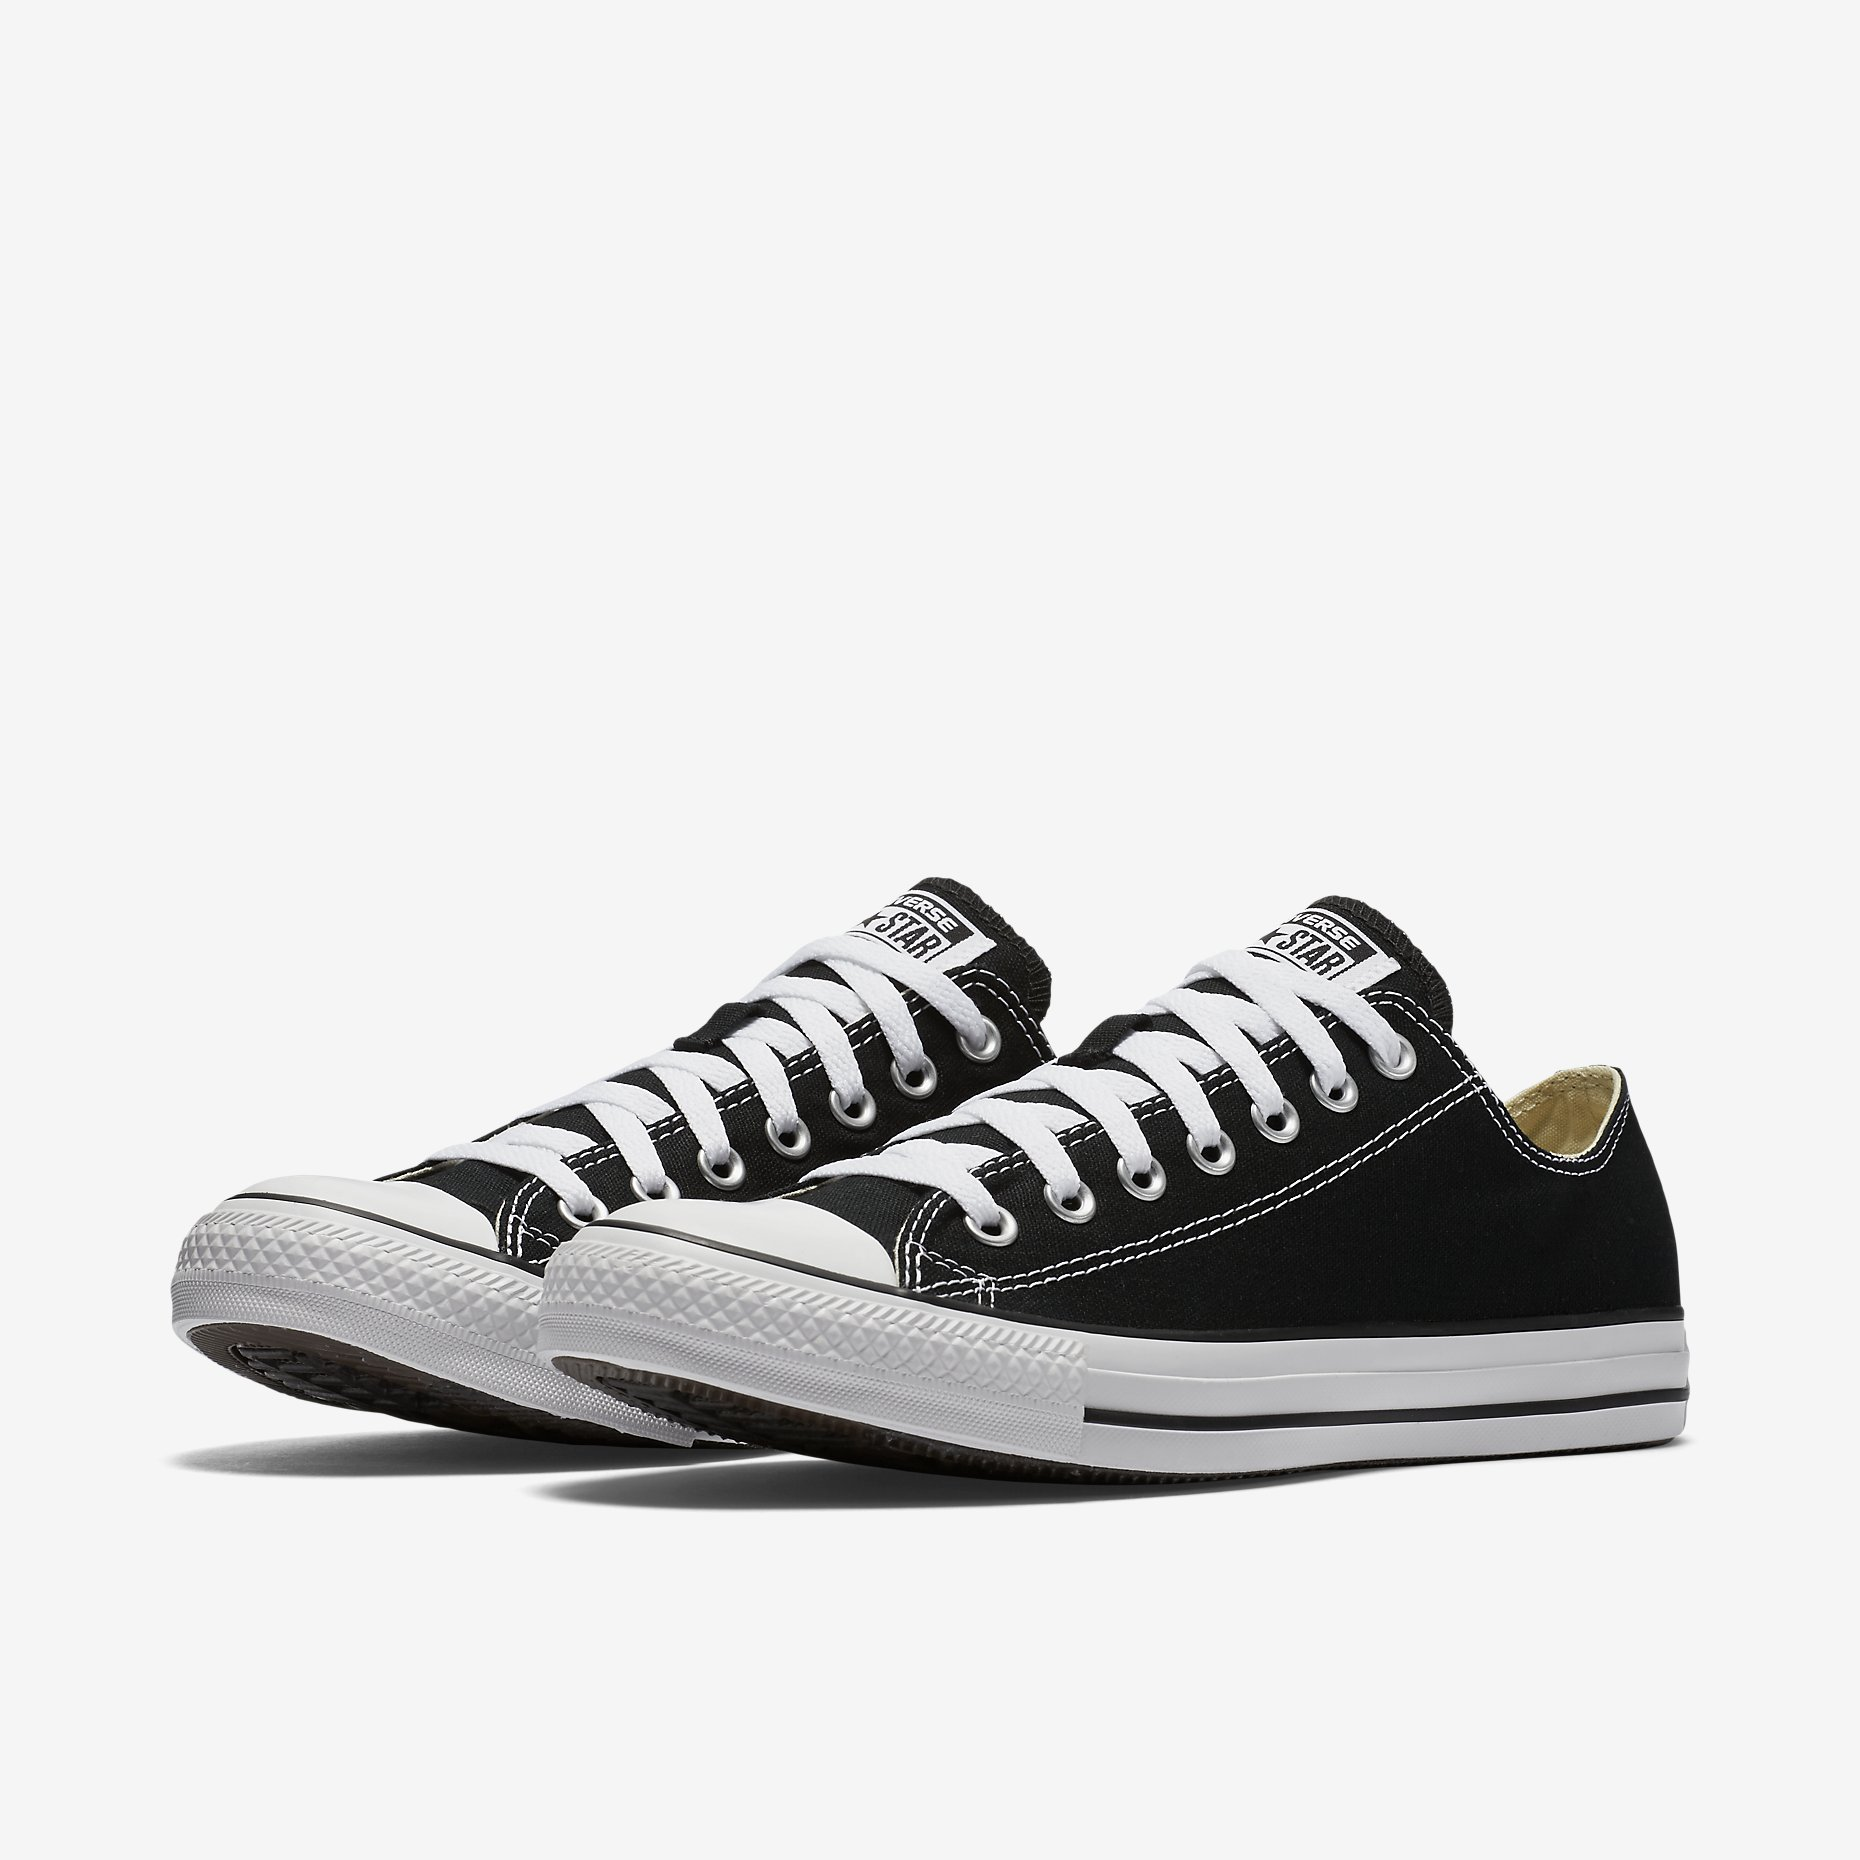 a4e1f4bb6d6c2c Converse Chuck Taylor All Star Low Top Black - Spinners Sports